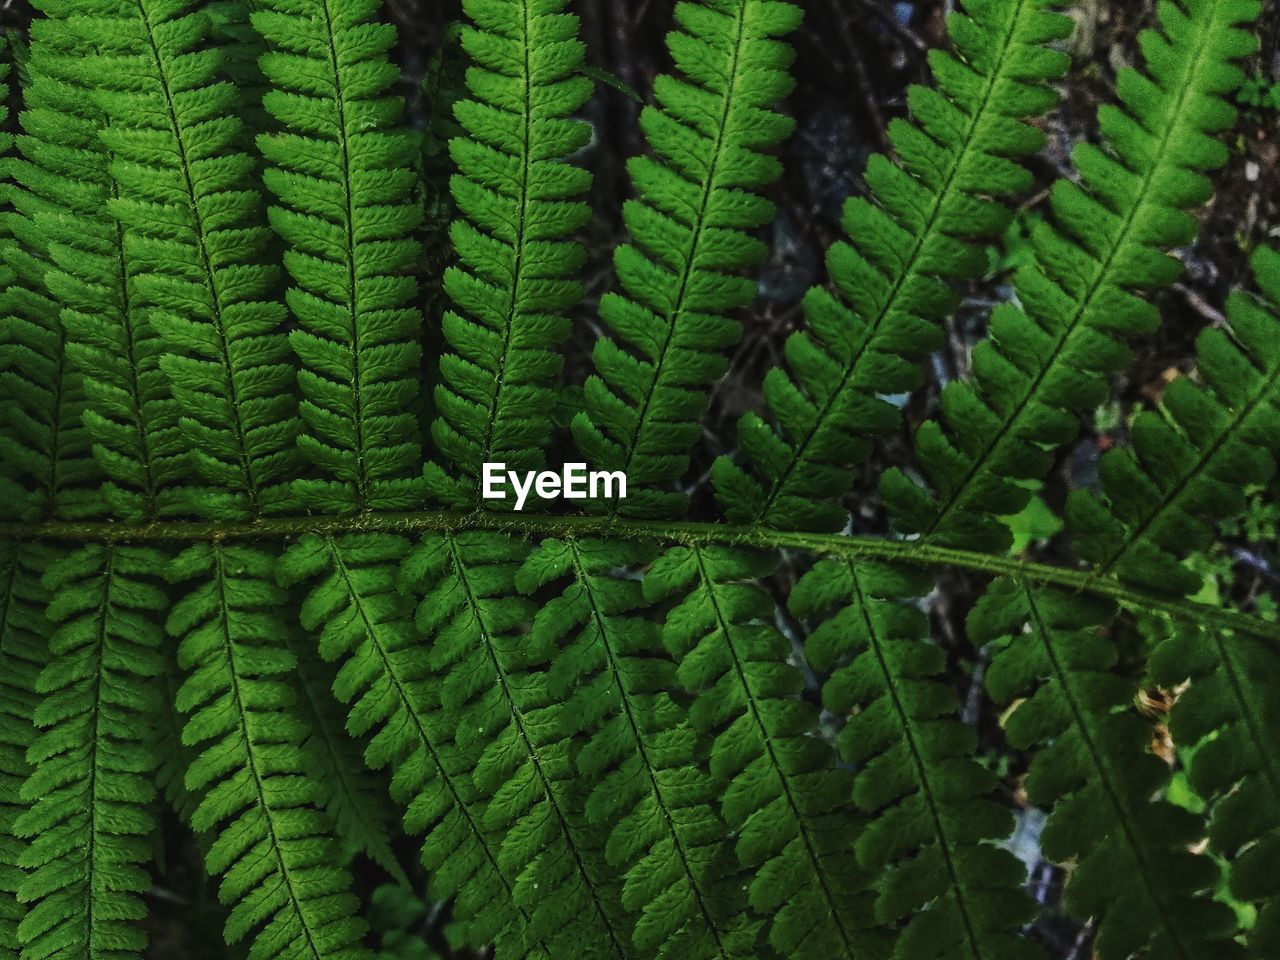 green color, growth, plant, close-up, full frame, no people, day, nature, beauty in nature, leaf, fern, natural pattern, plant part, pattern, backgrounds, selective focus, focus on foreground, outdoors, freshness, botany